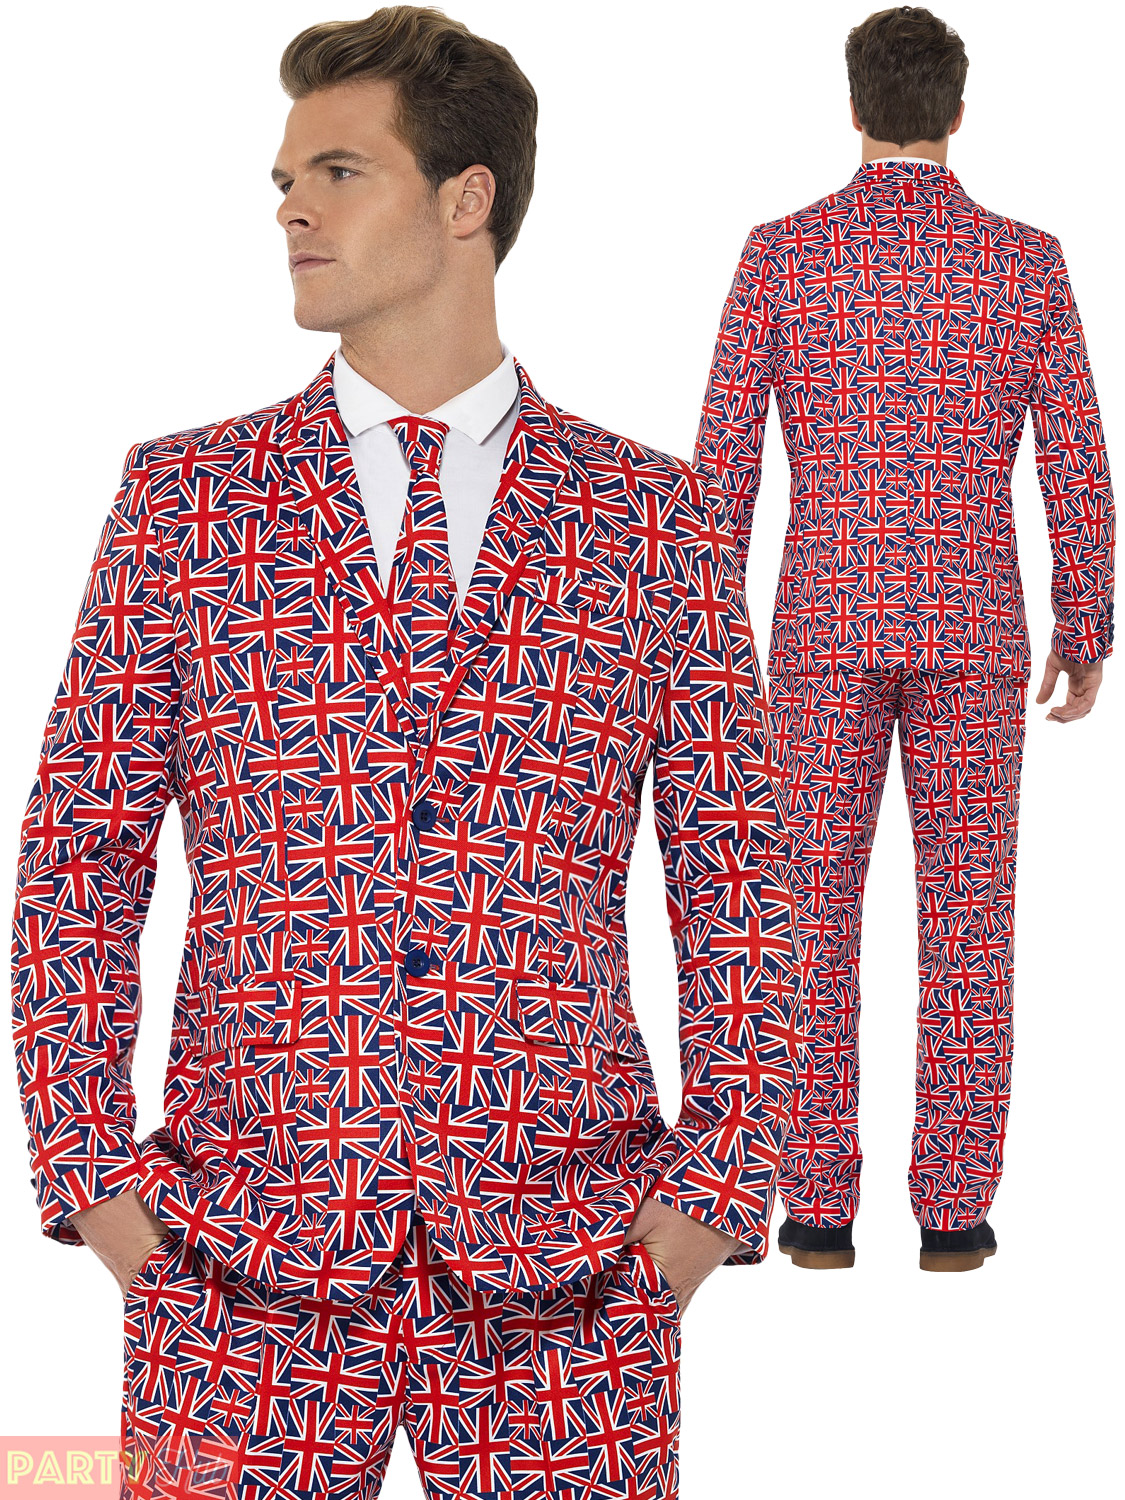 Accept. interesting union suits for adults